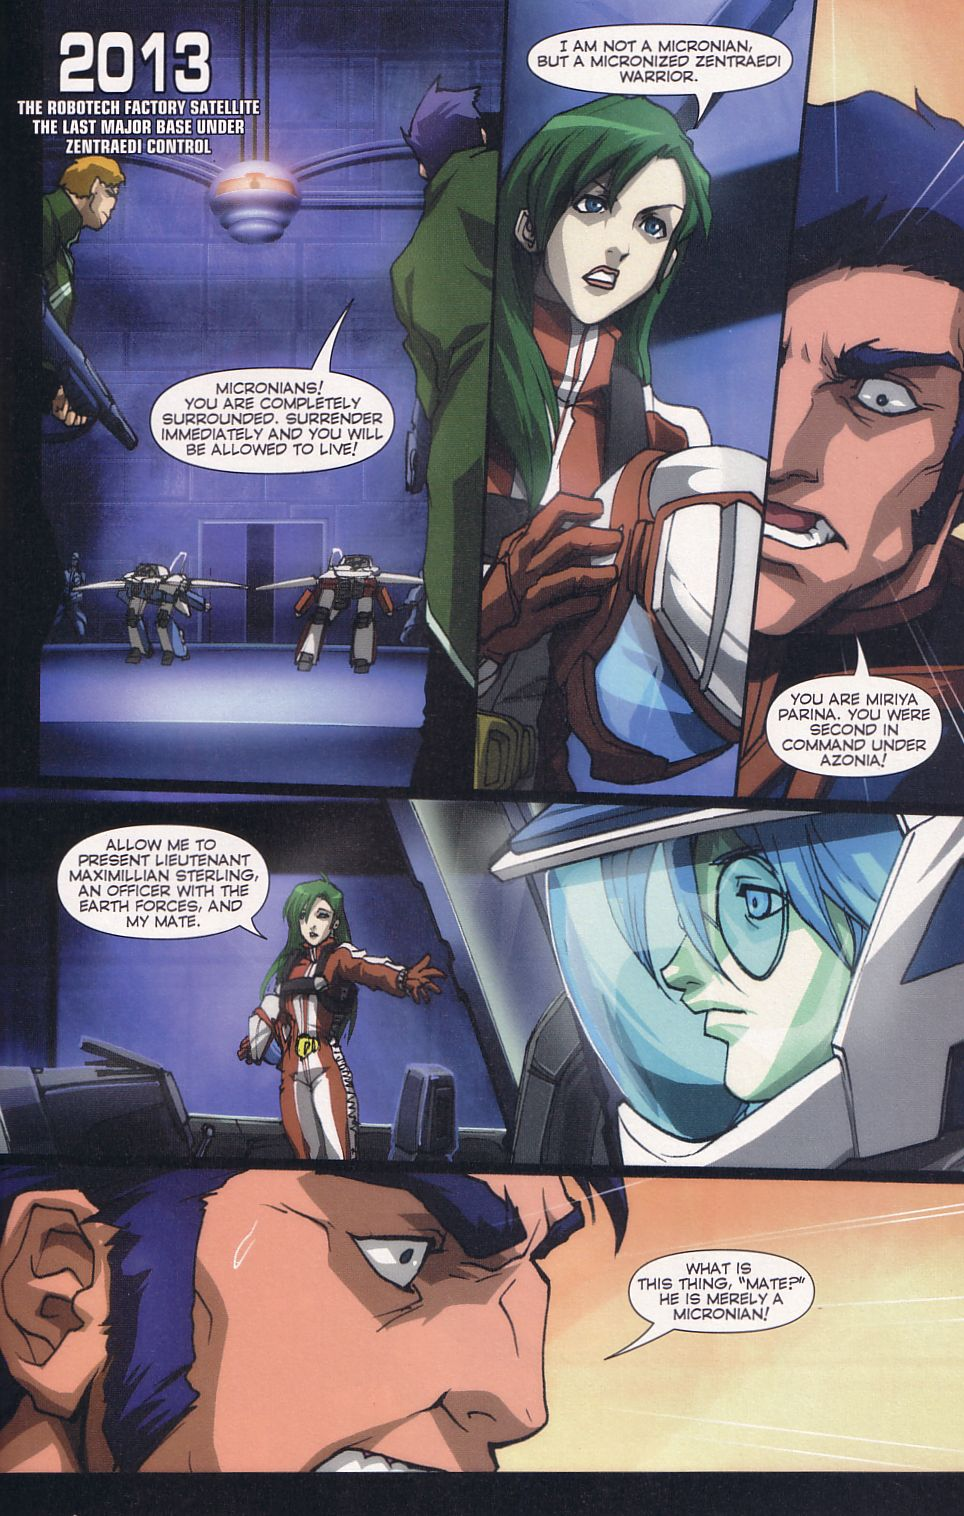 Read online Robotech: Love and War comic -  Issue #6 - 16